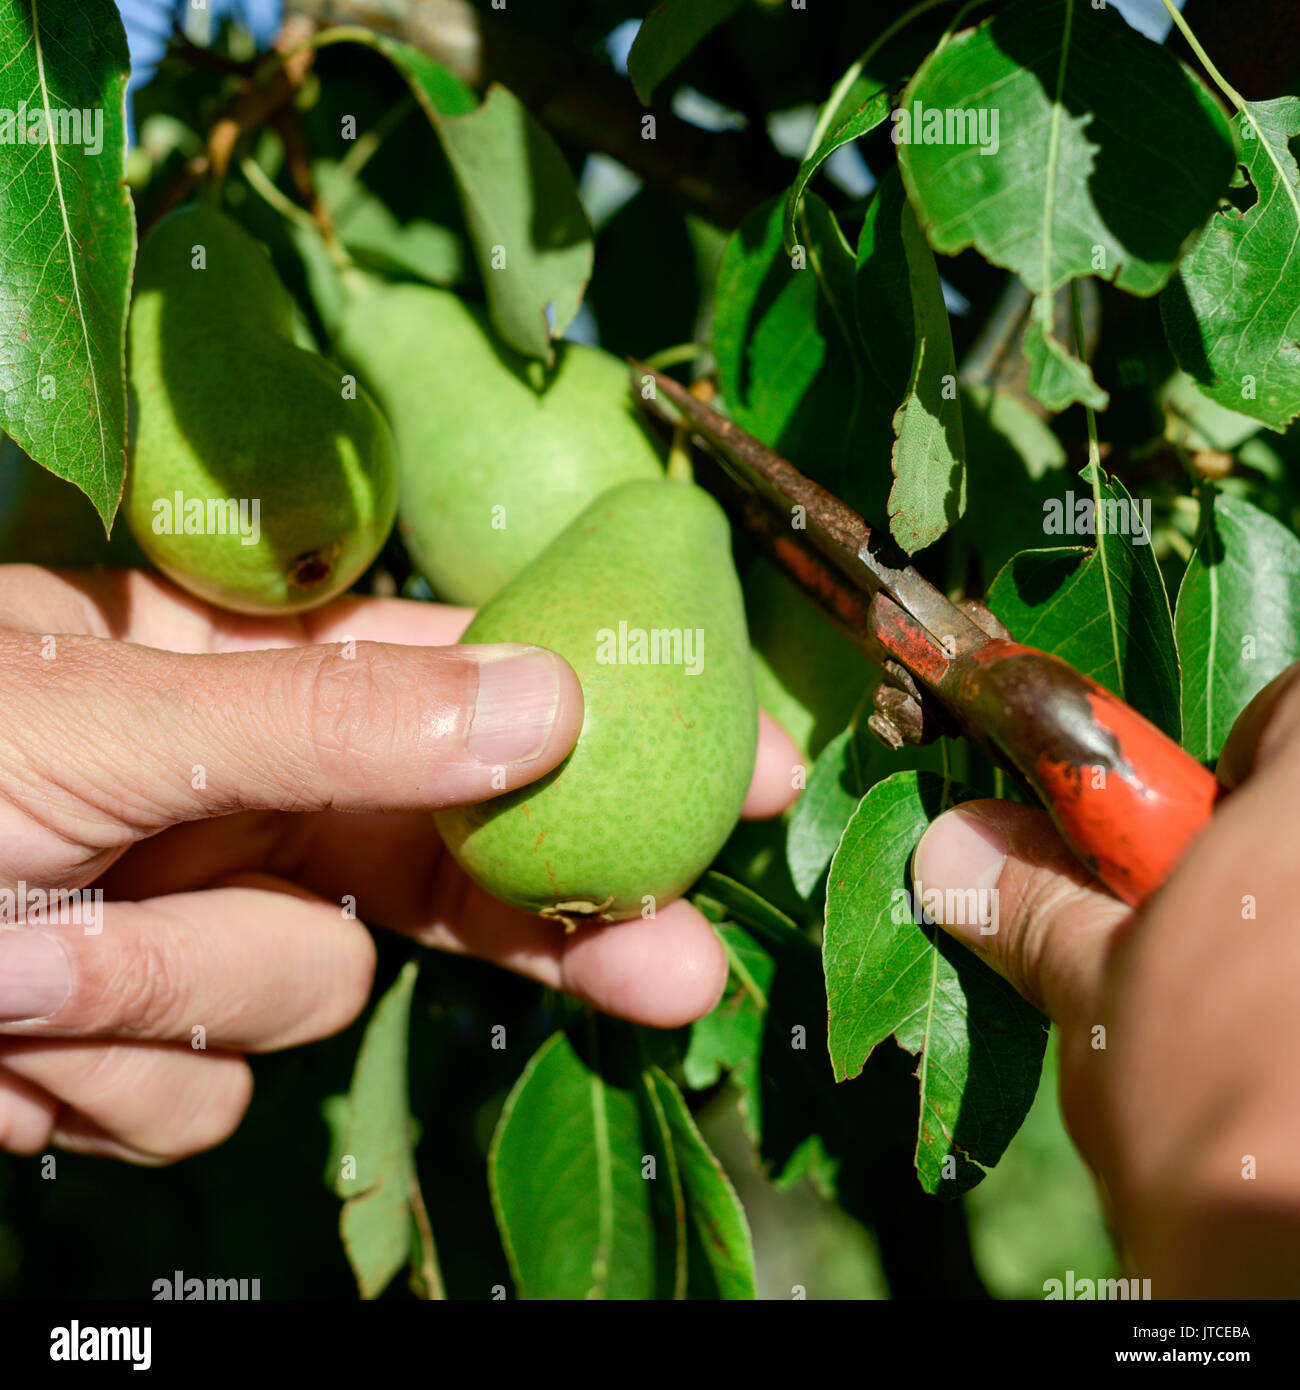 Young pear tree stock photos young pear tree stock images alamy - Spring trimming orchard trees healthy ...